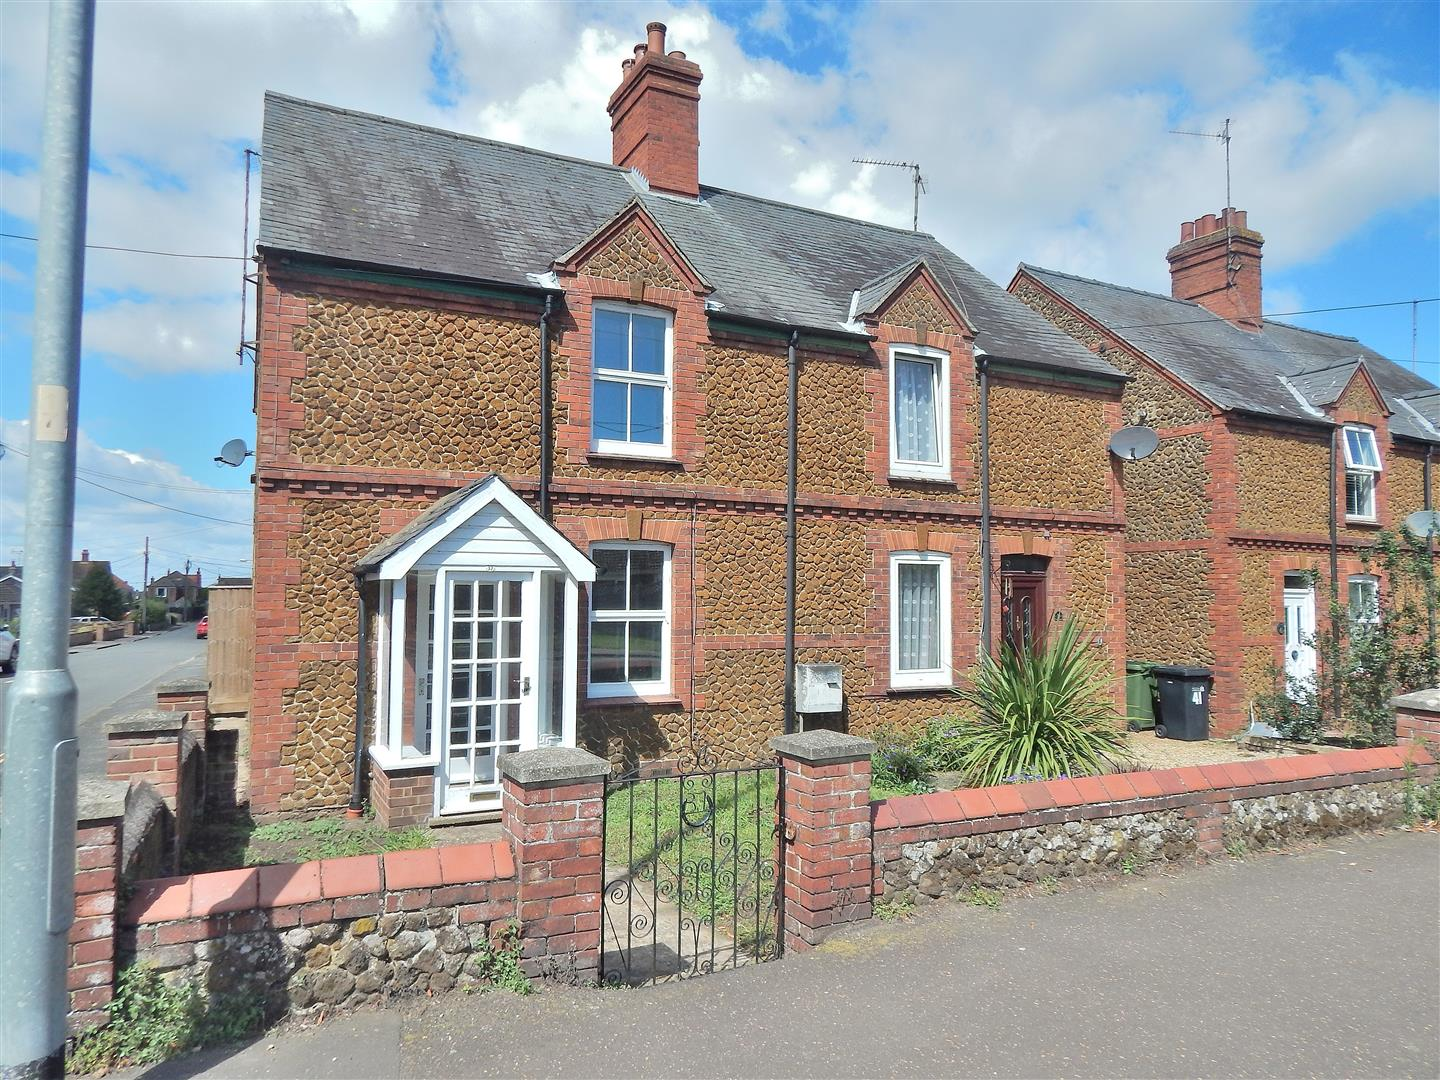 2 bed semi-detached house for sale in King's Lynn, PE31 6NA 0